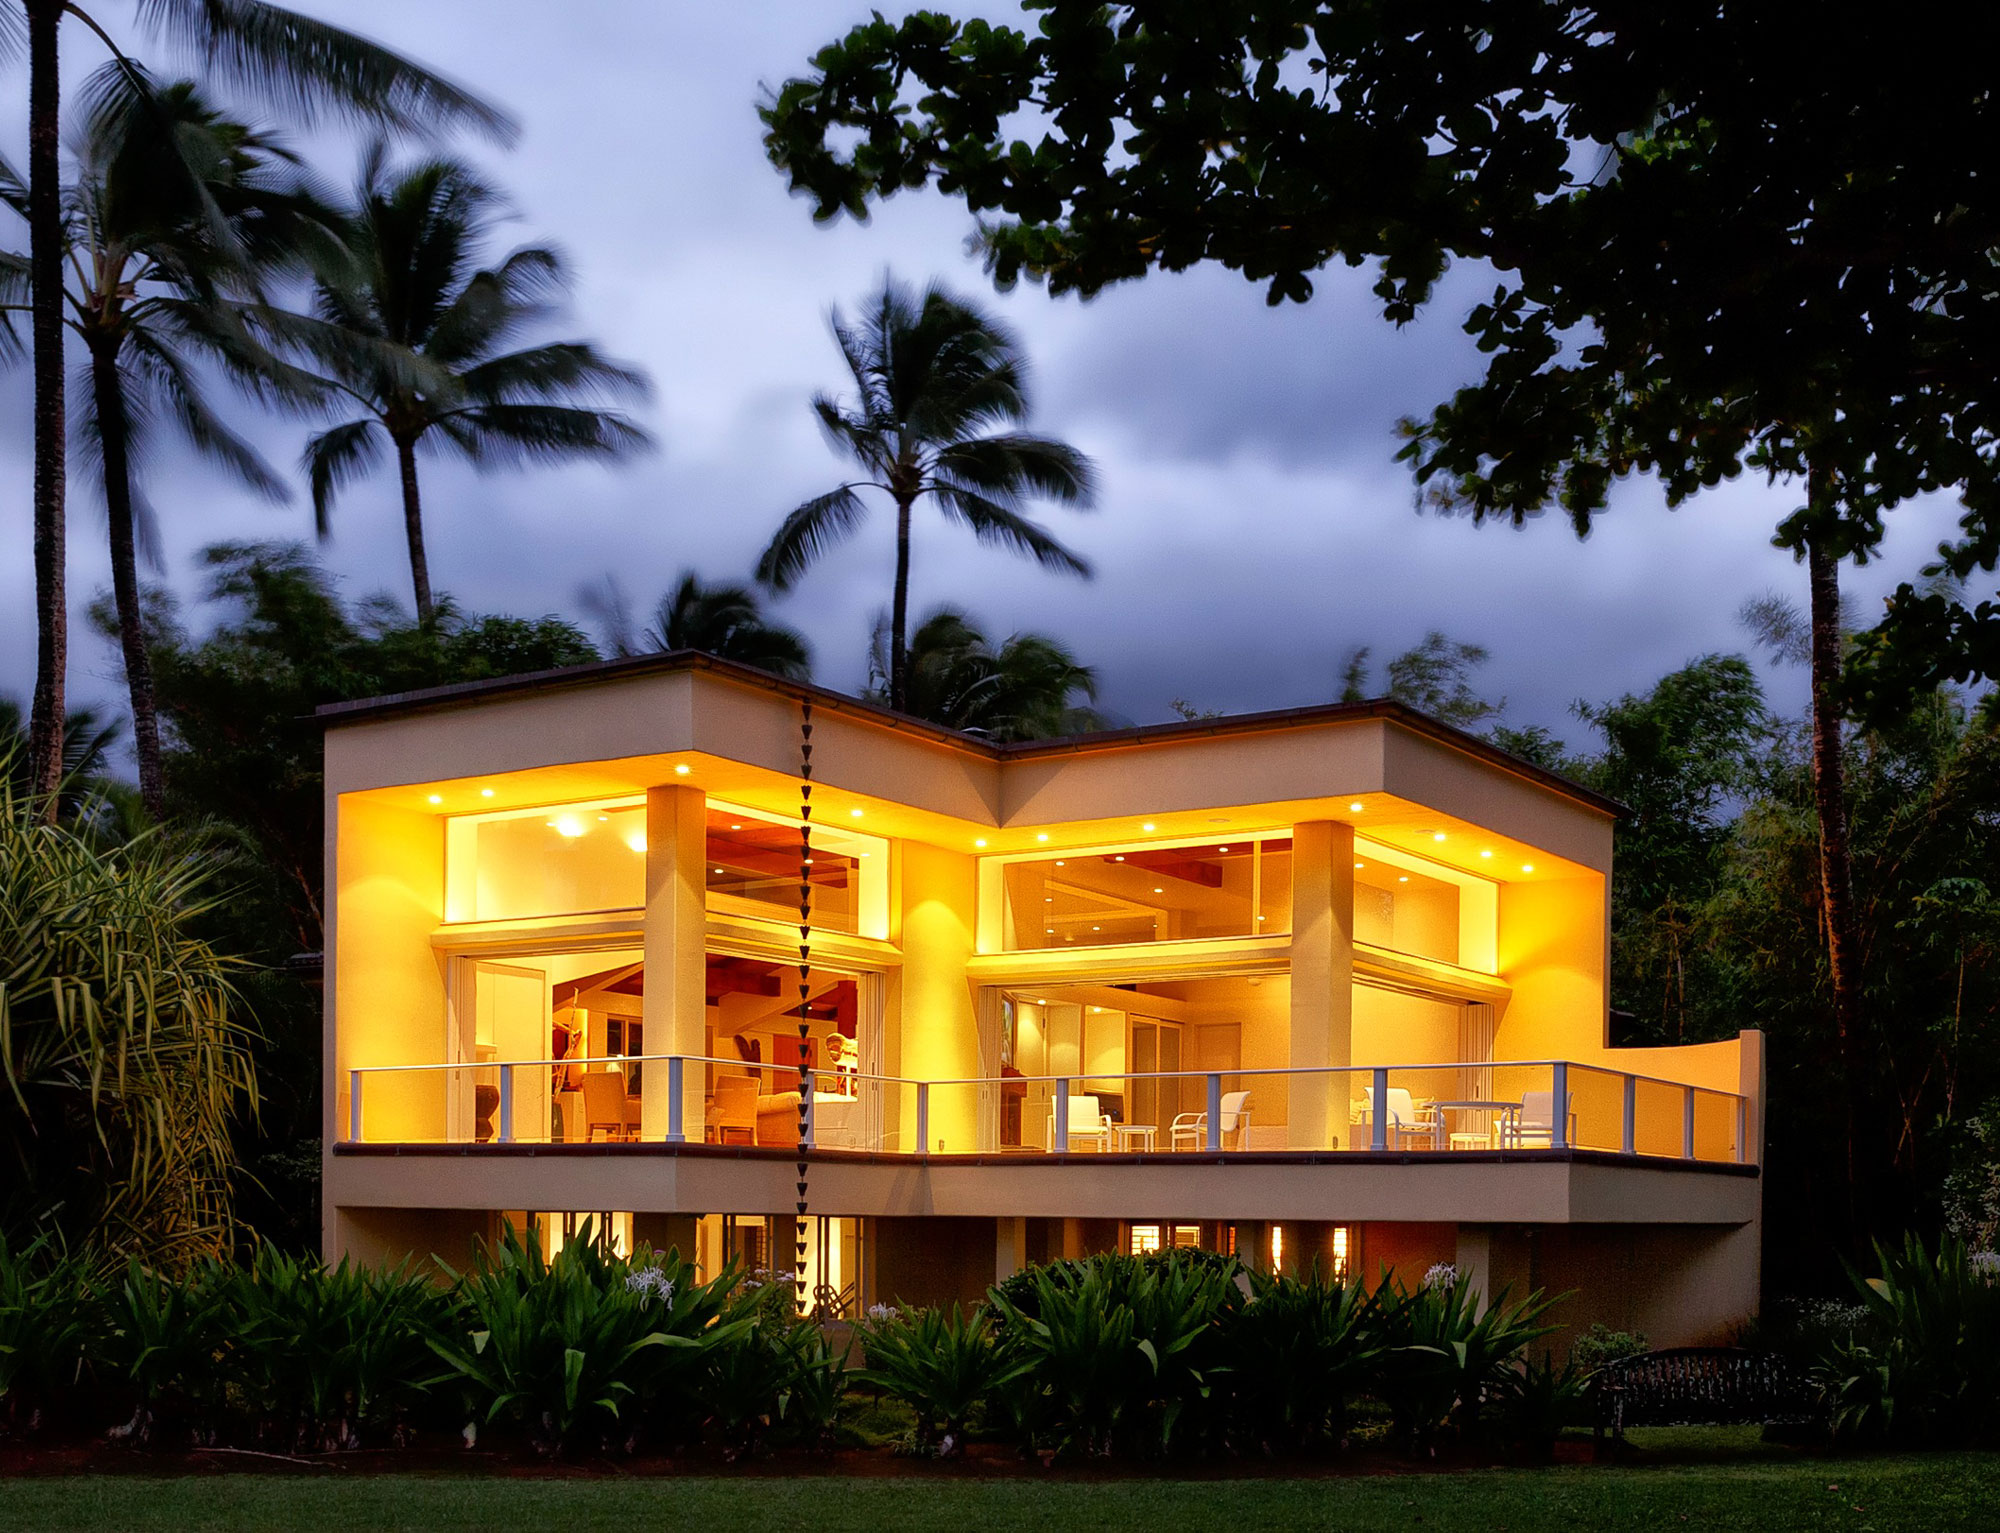 The main house, designed by famed architect James A. Schmidt, features 15-foot-high ceilings and glass pocket doors, which frame 180-degree views of Hanalei Bay.